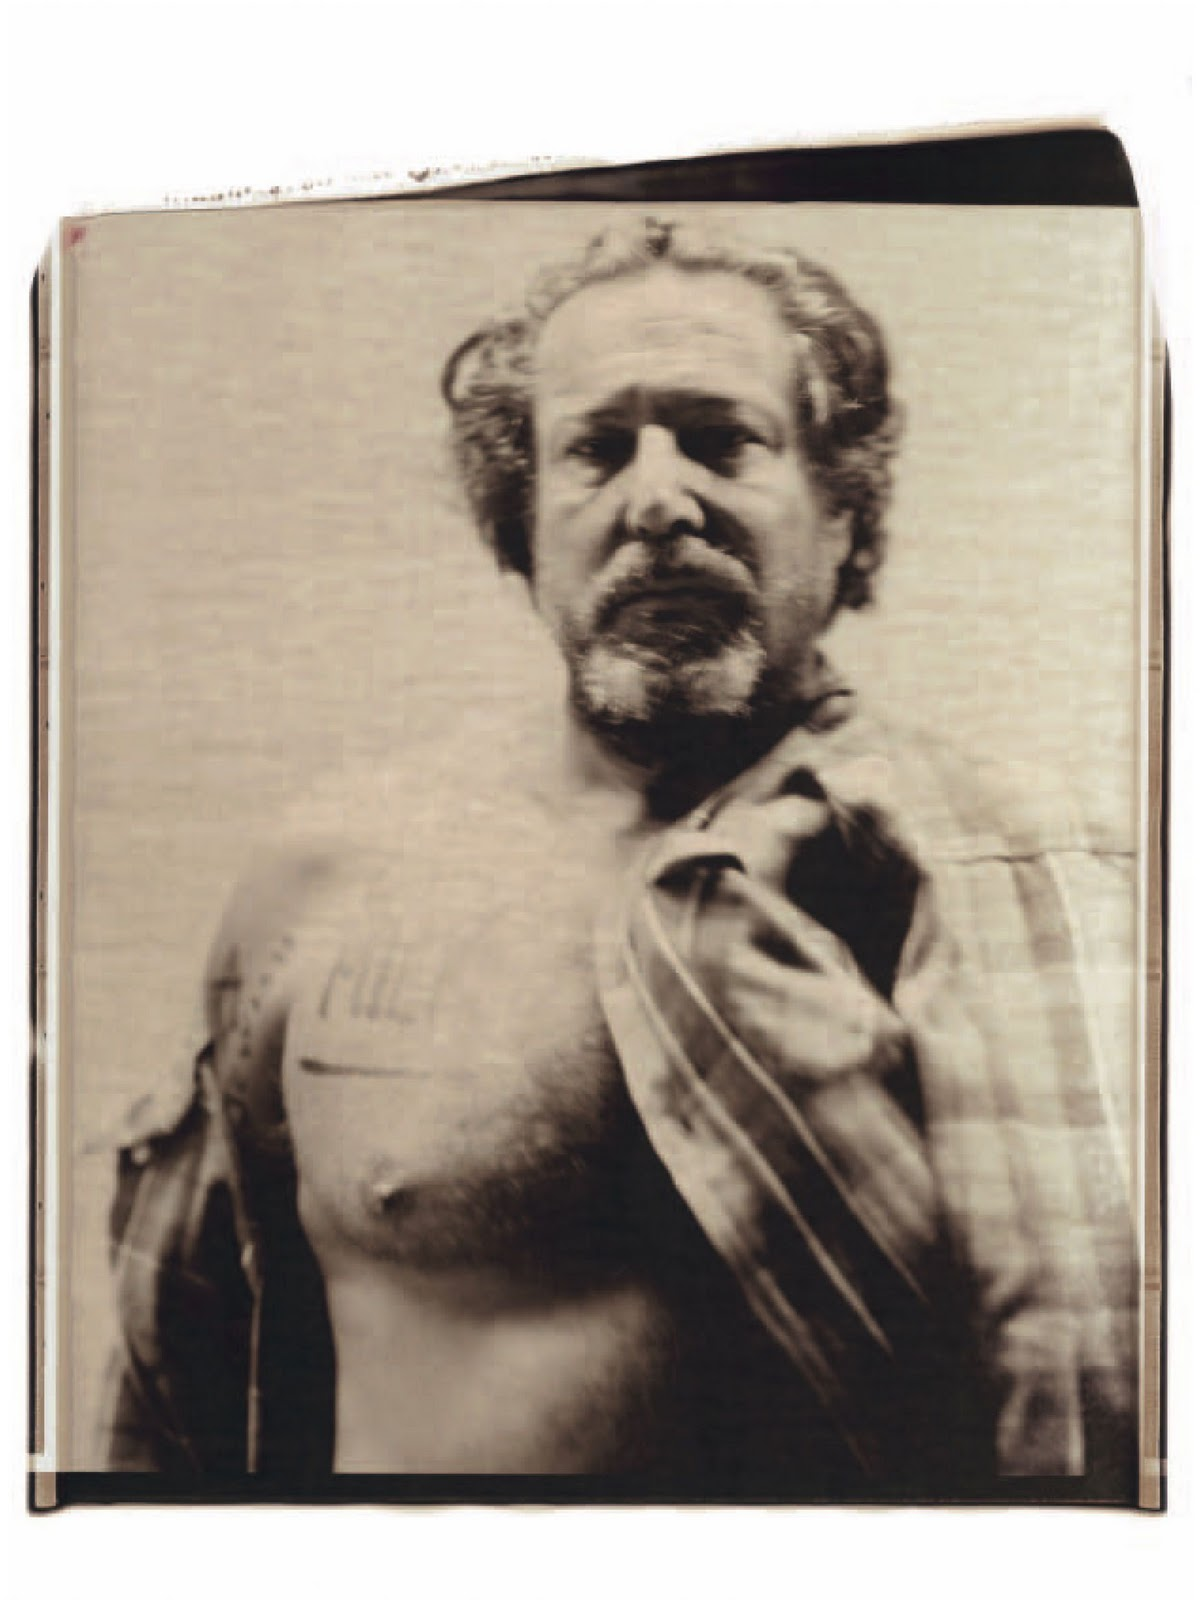 julian schnabel on paper